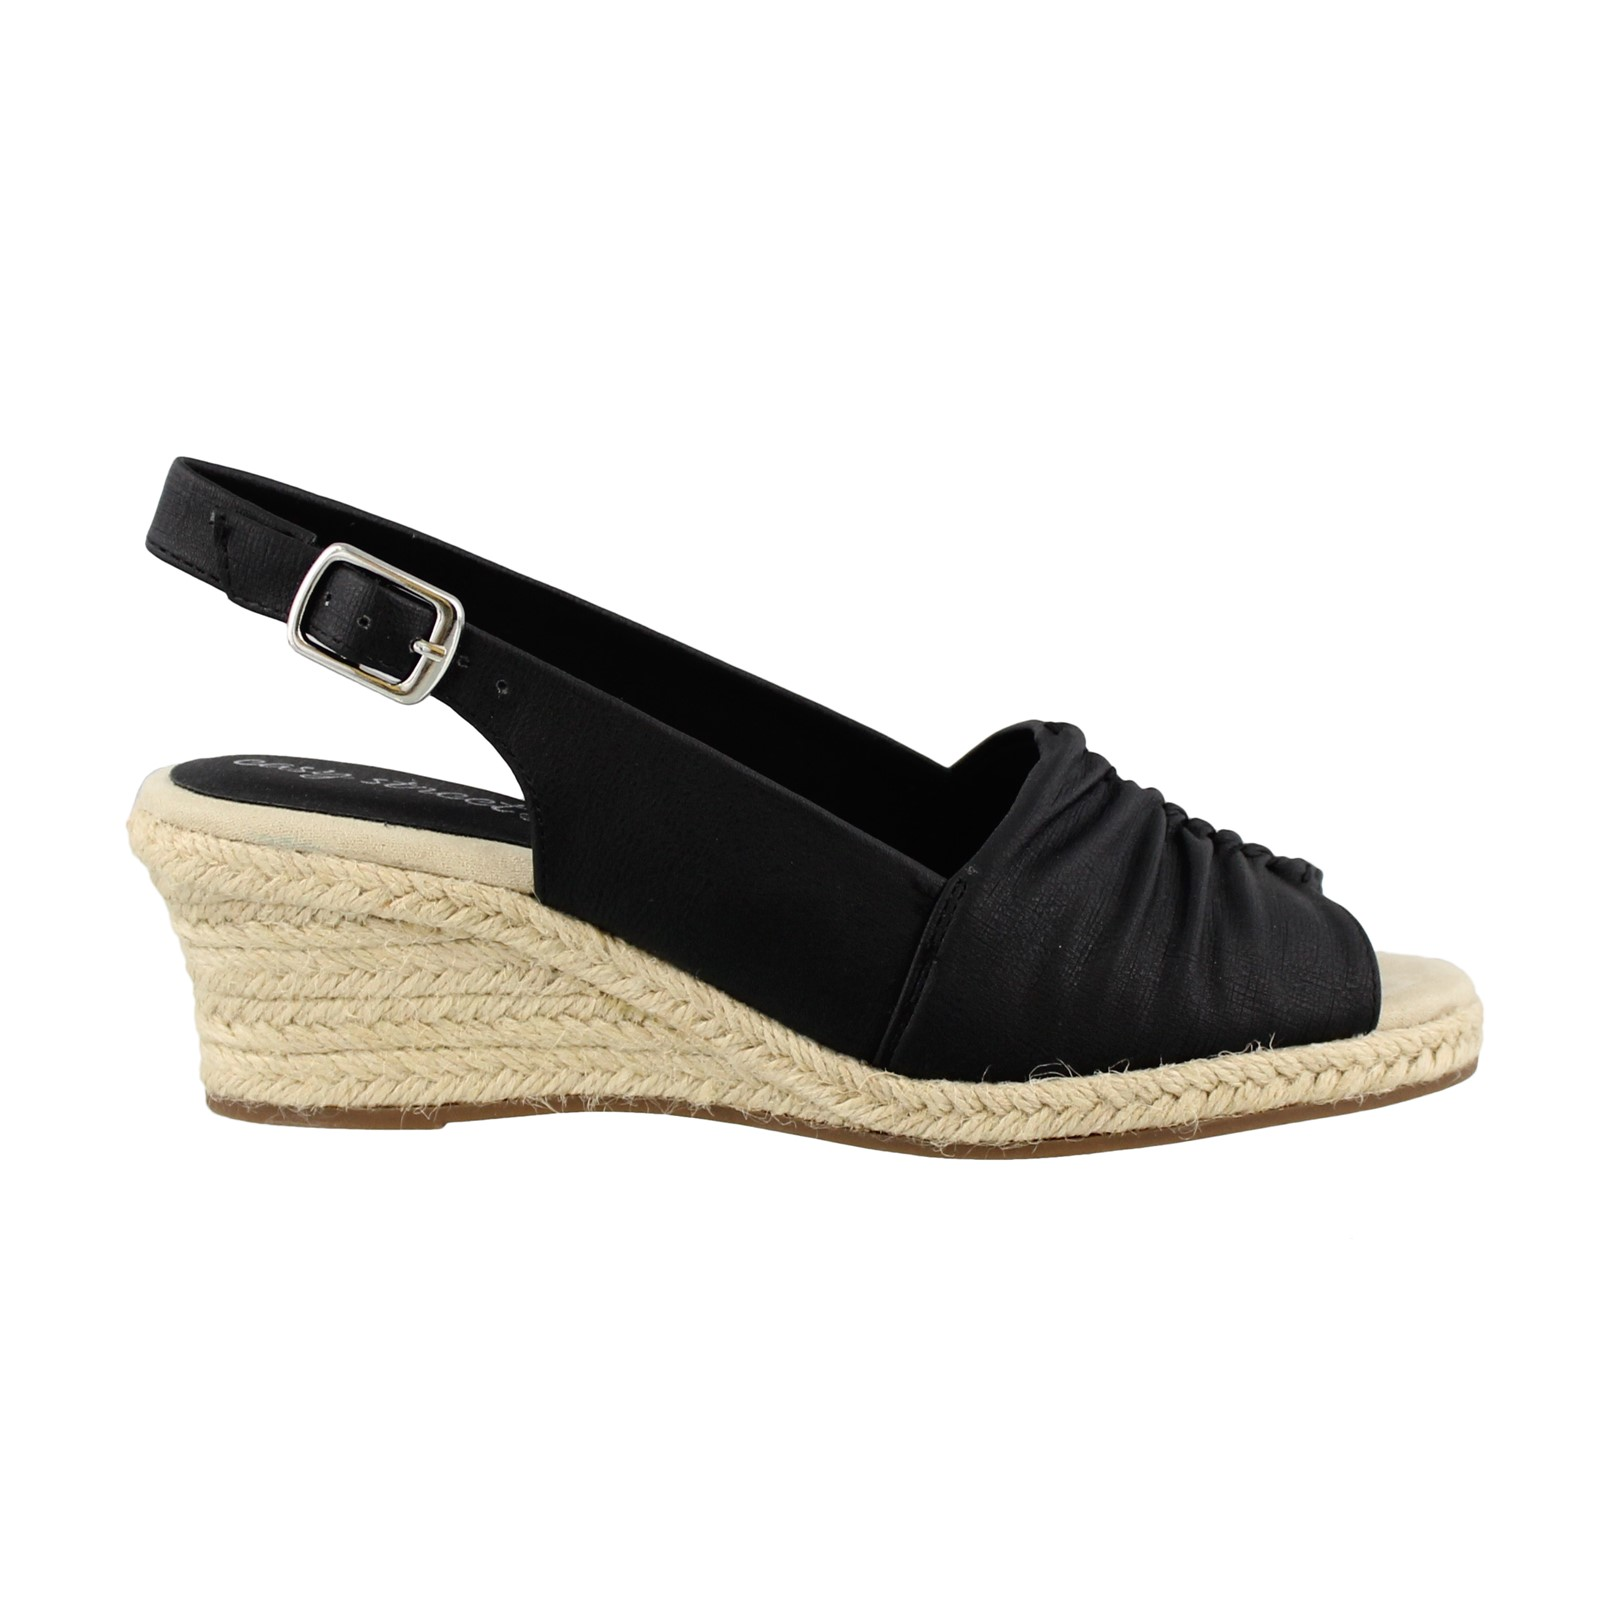 Women's Easy Street, Kindly Mid Heel Sandals